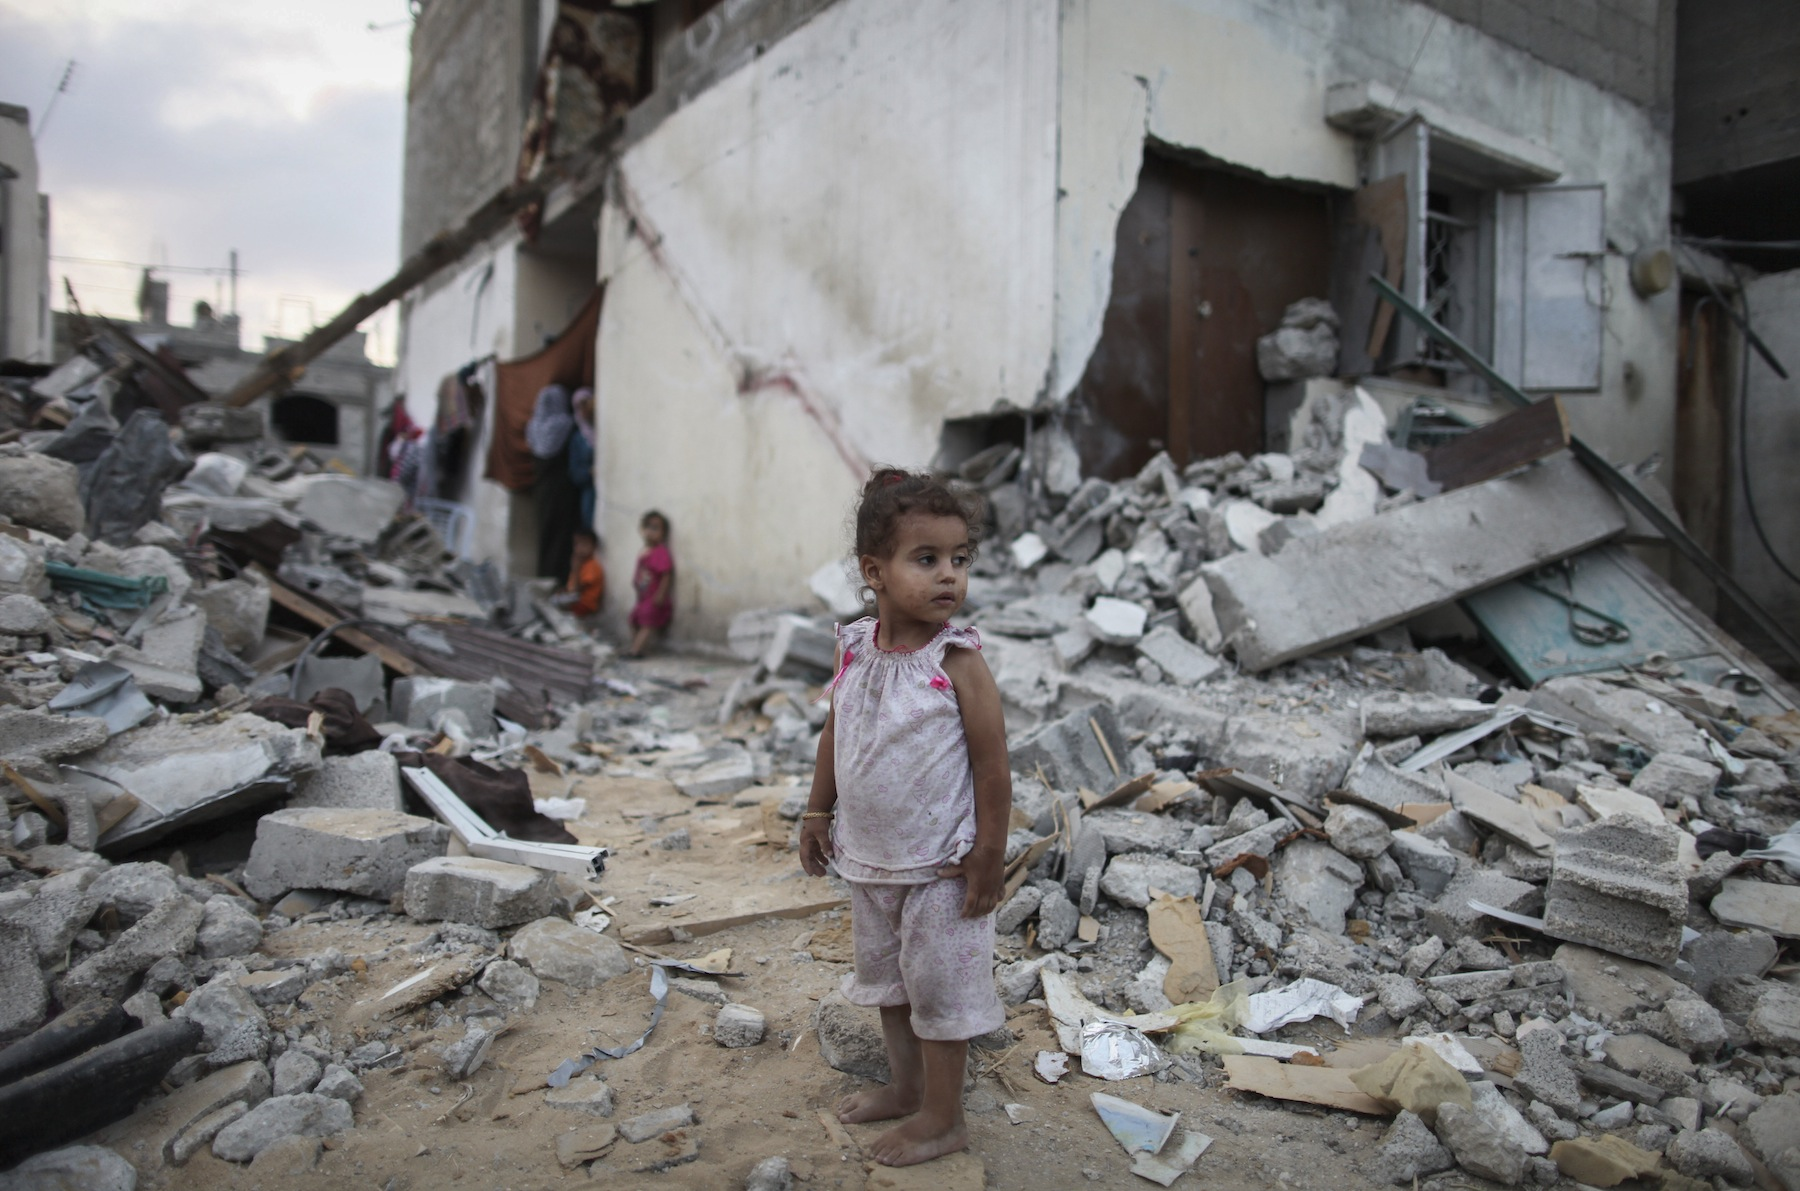 A Palestinian child amid the rubble of homes destroyed by Israeli airstrikes in the northern Gaza Strip, Aug. 18, 2014. (Emad Nasser/Flash90